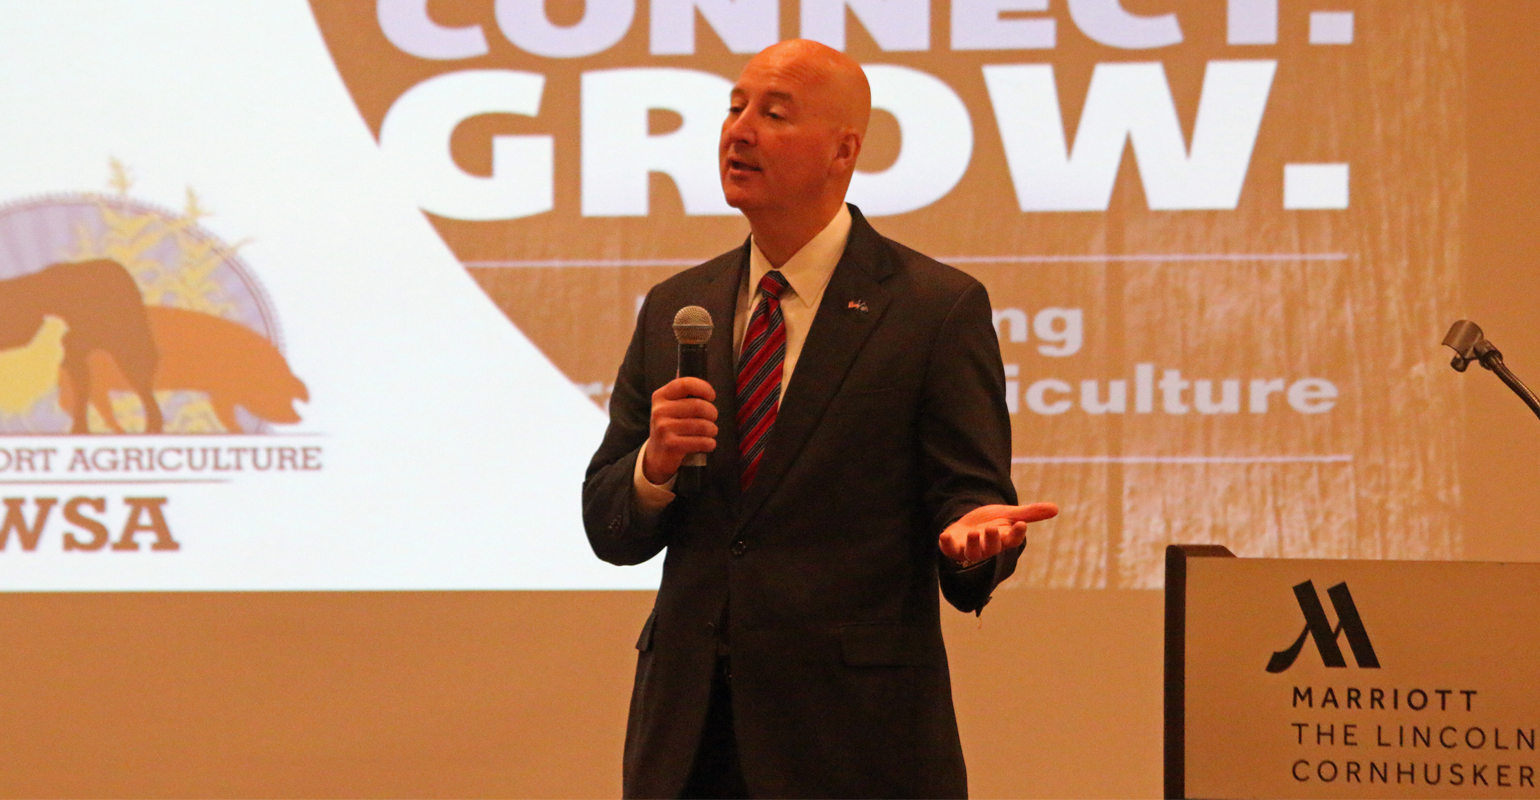 Nebraska Governor Pete Ricketts shares projected numbers for the $1.2 billion impact of the Costco/LPP project